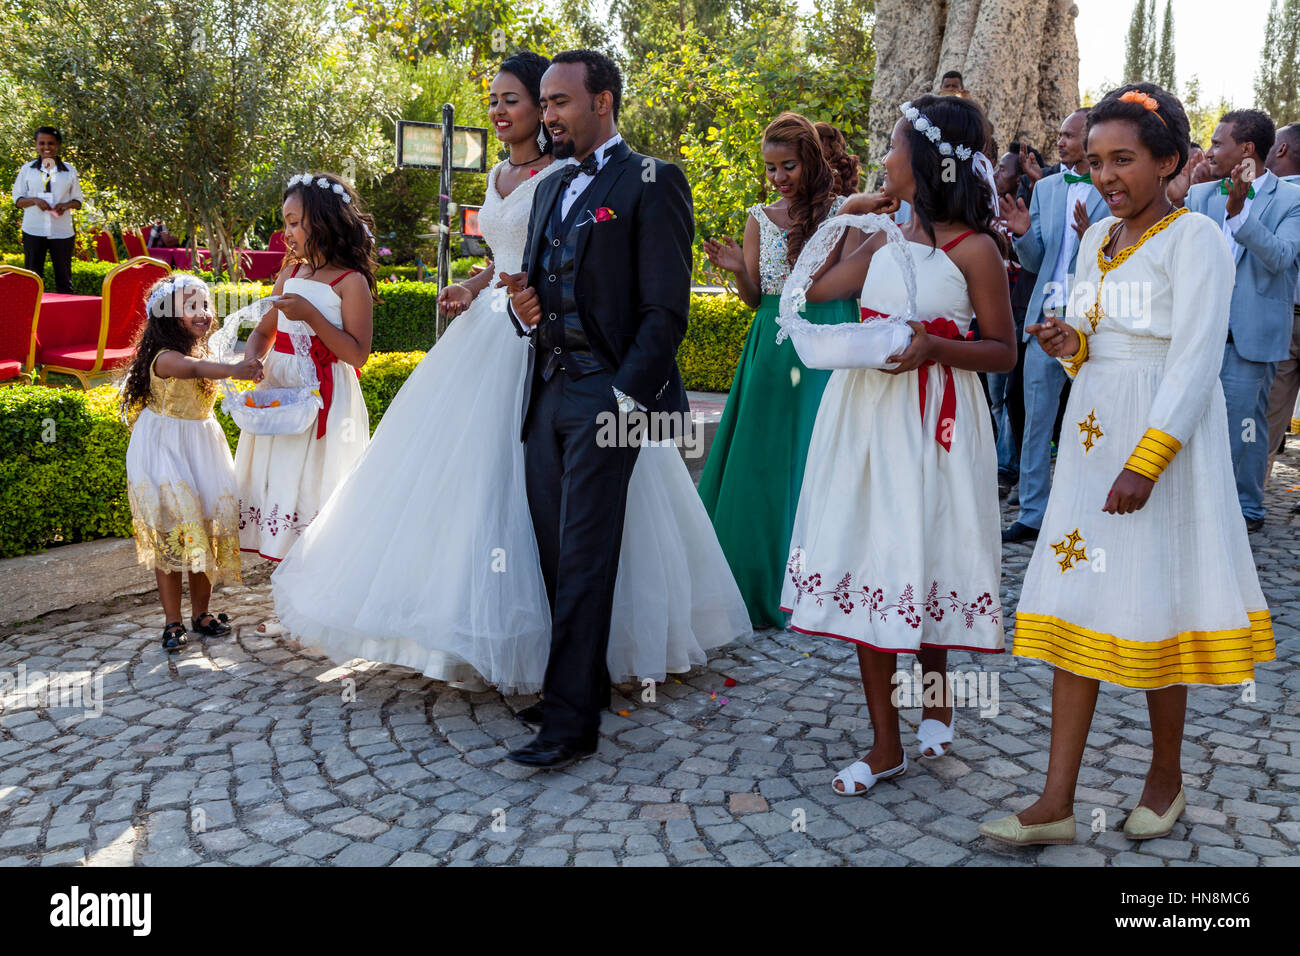 A Wedding Party, The Bride and Bridegroom Lead A Procession, Lake Ziway, Ziway, Ethiopia Stock Photo